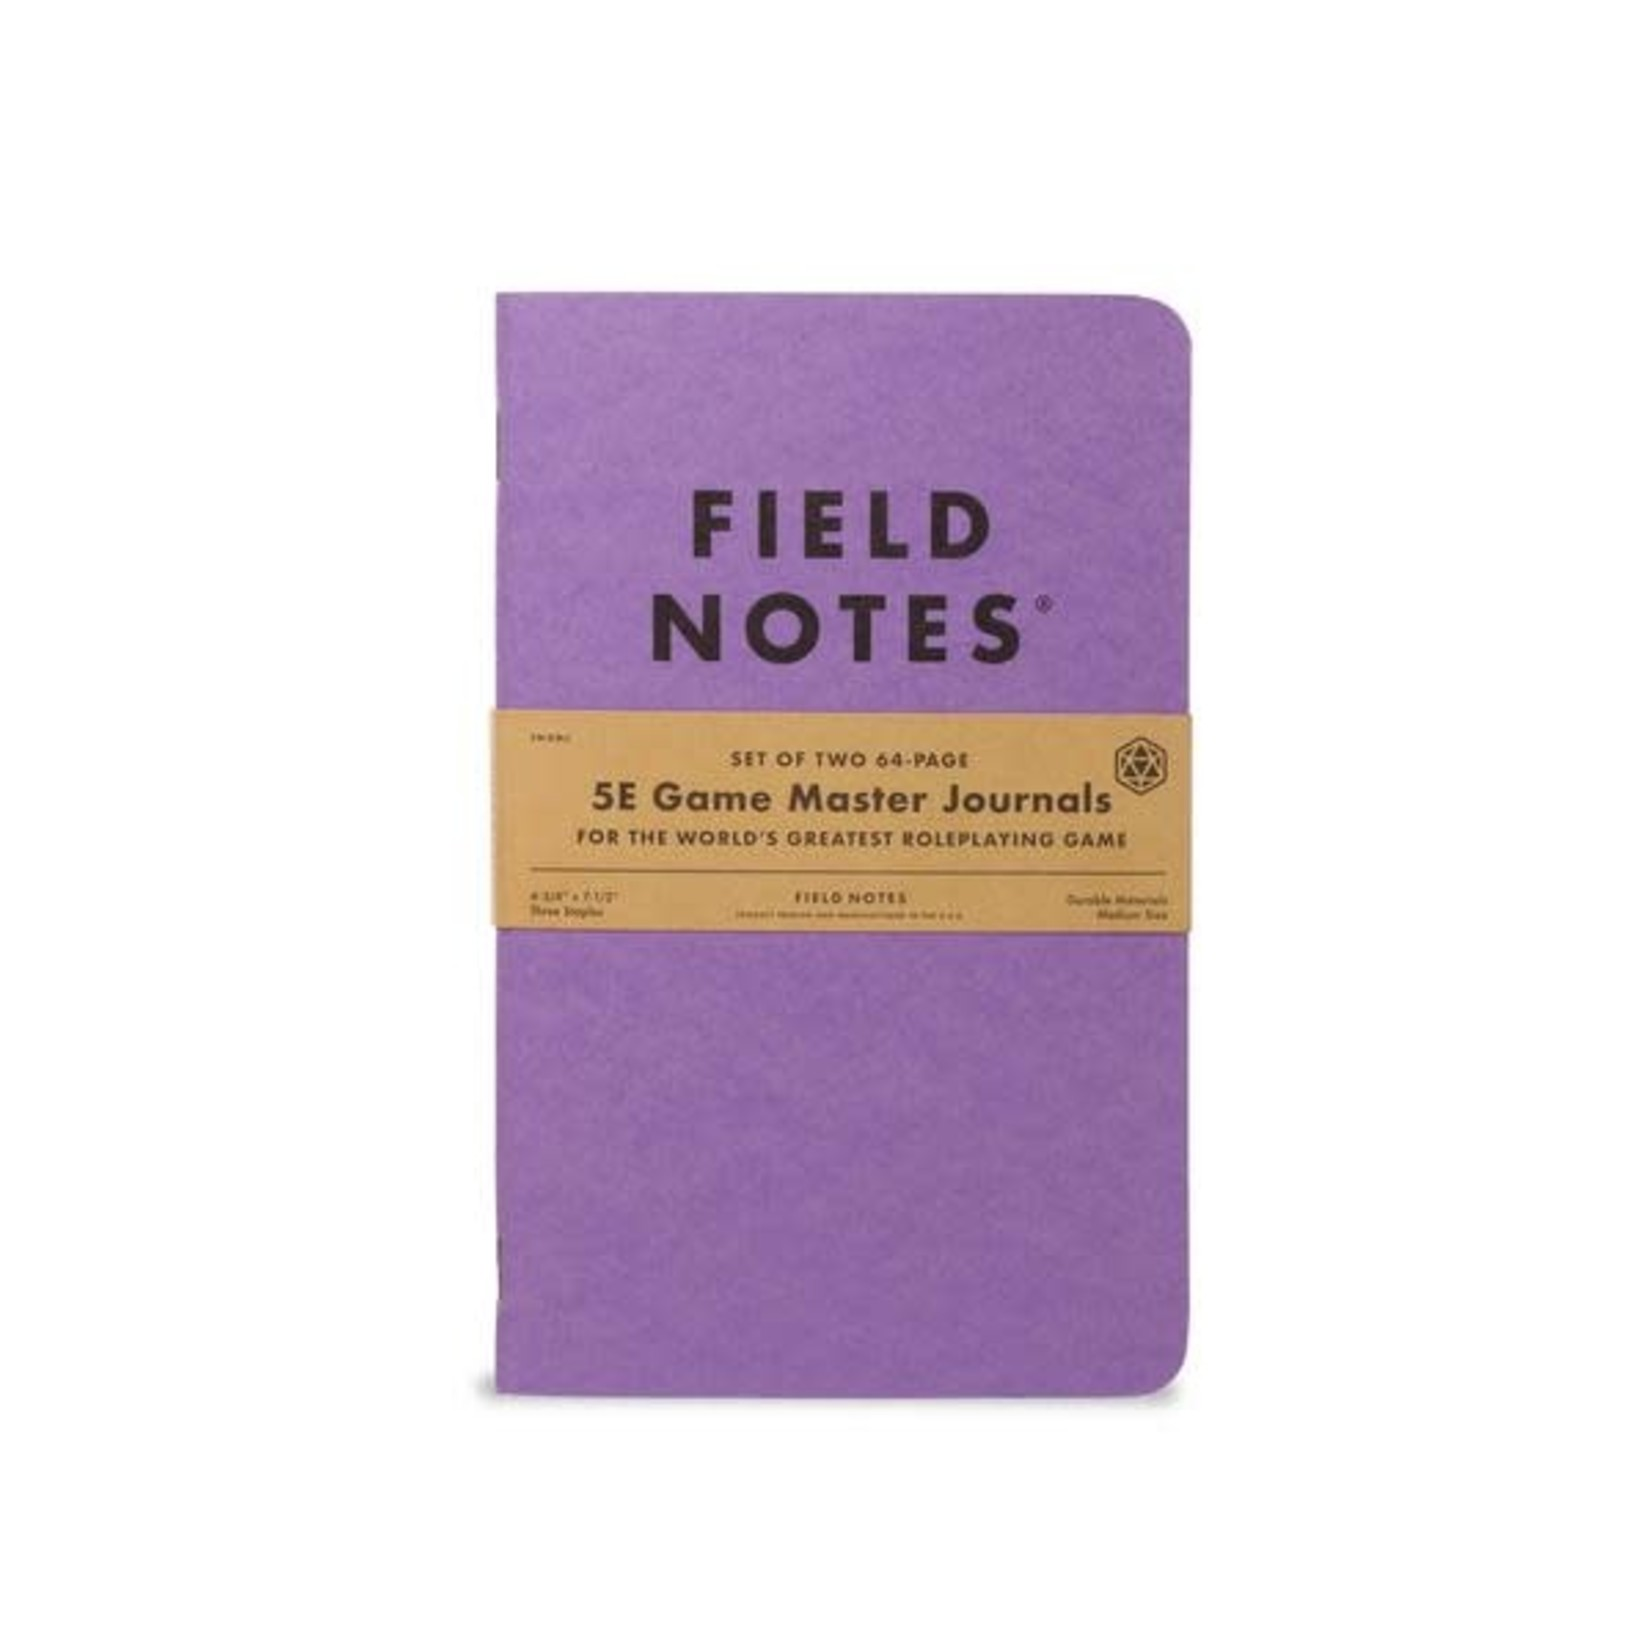 Field Notes Field Notes: 5th Edition Game Master Journals